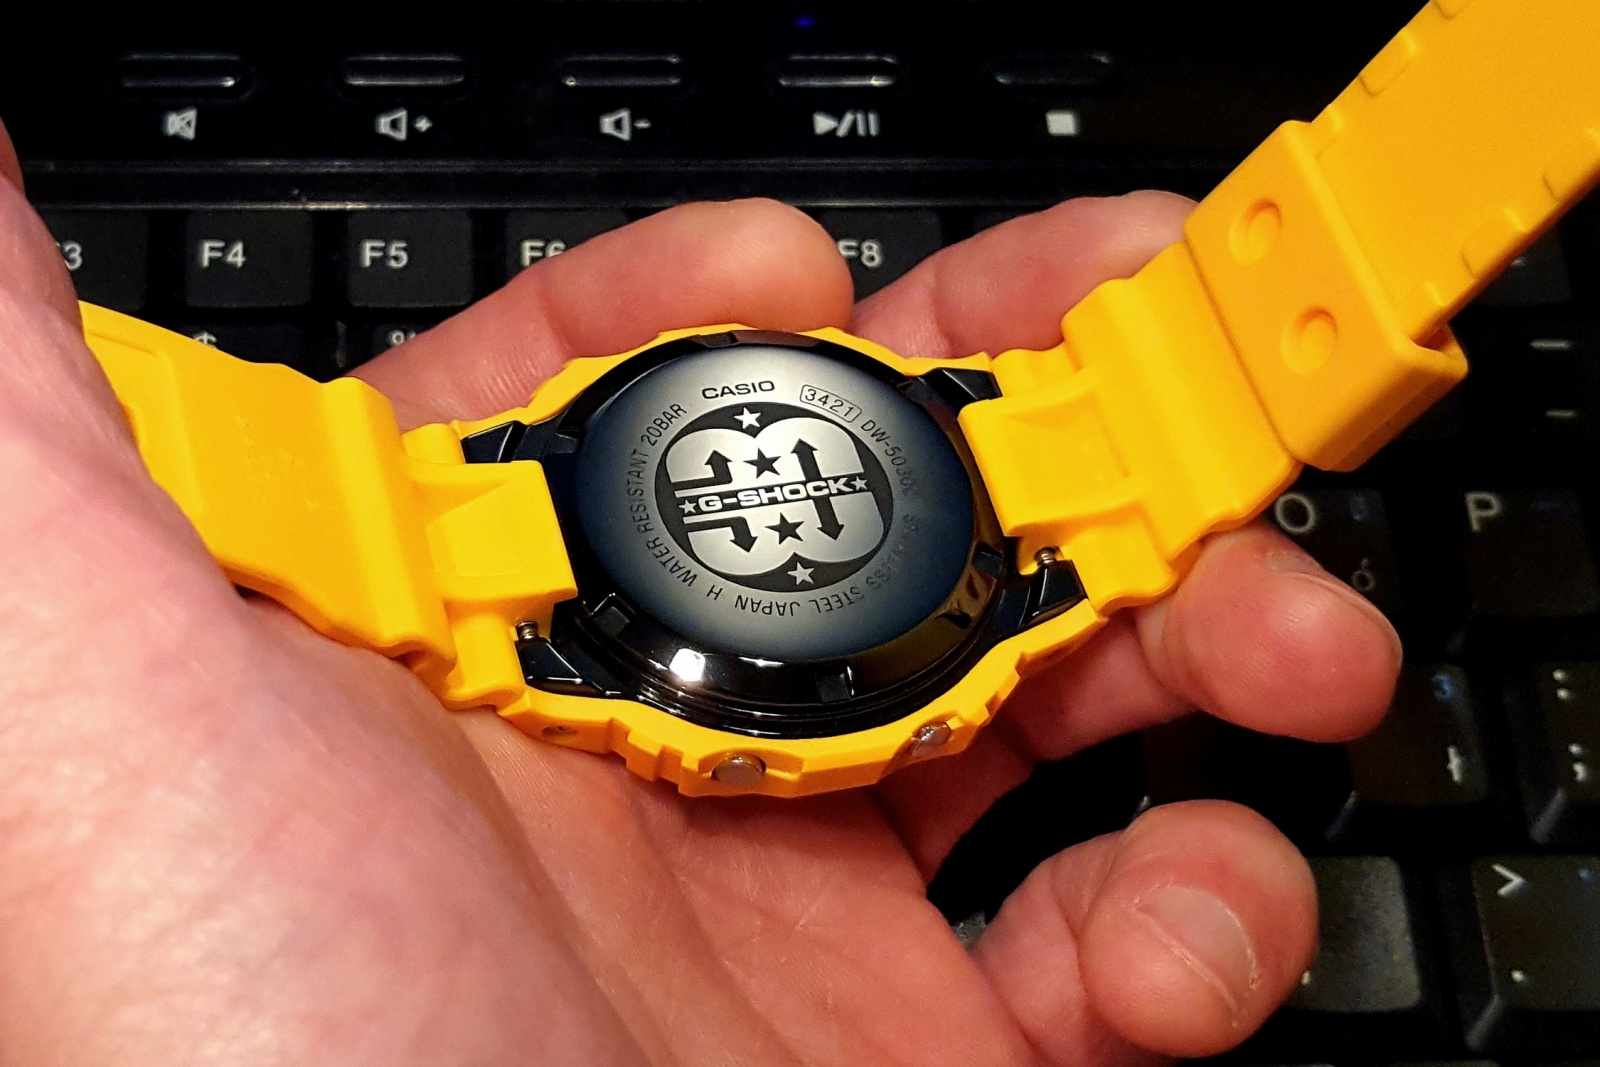 CASIO G-SHOCK DW-5030 BACK